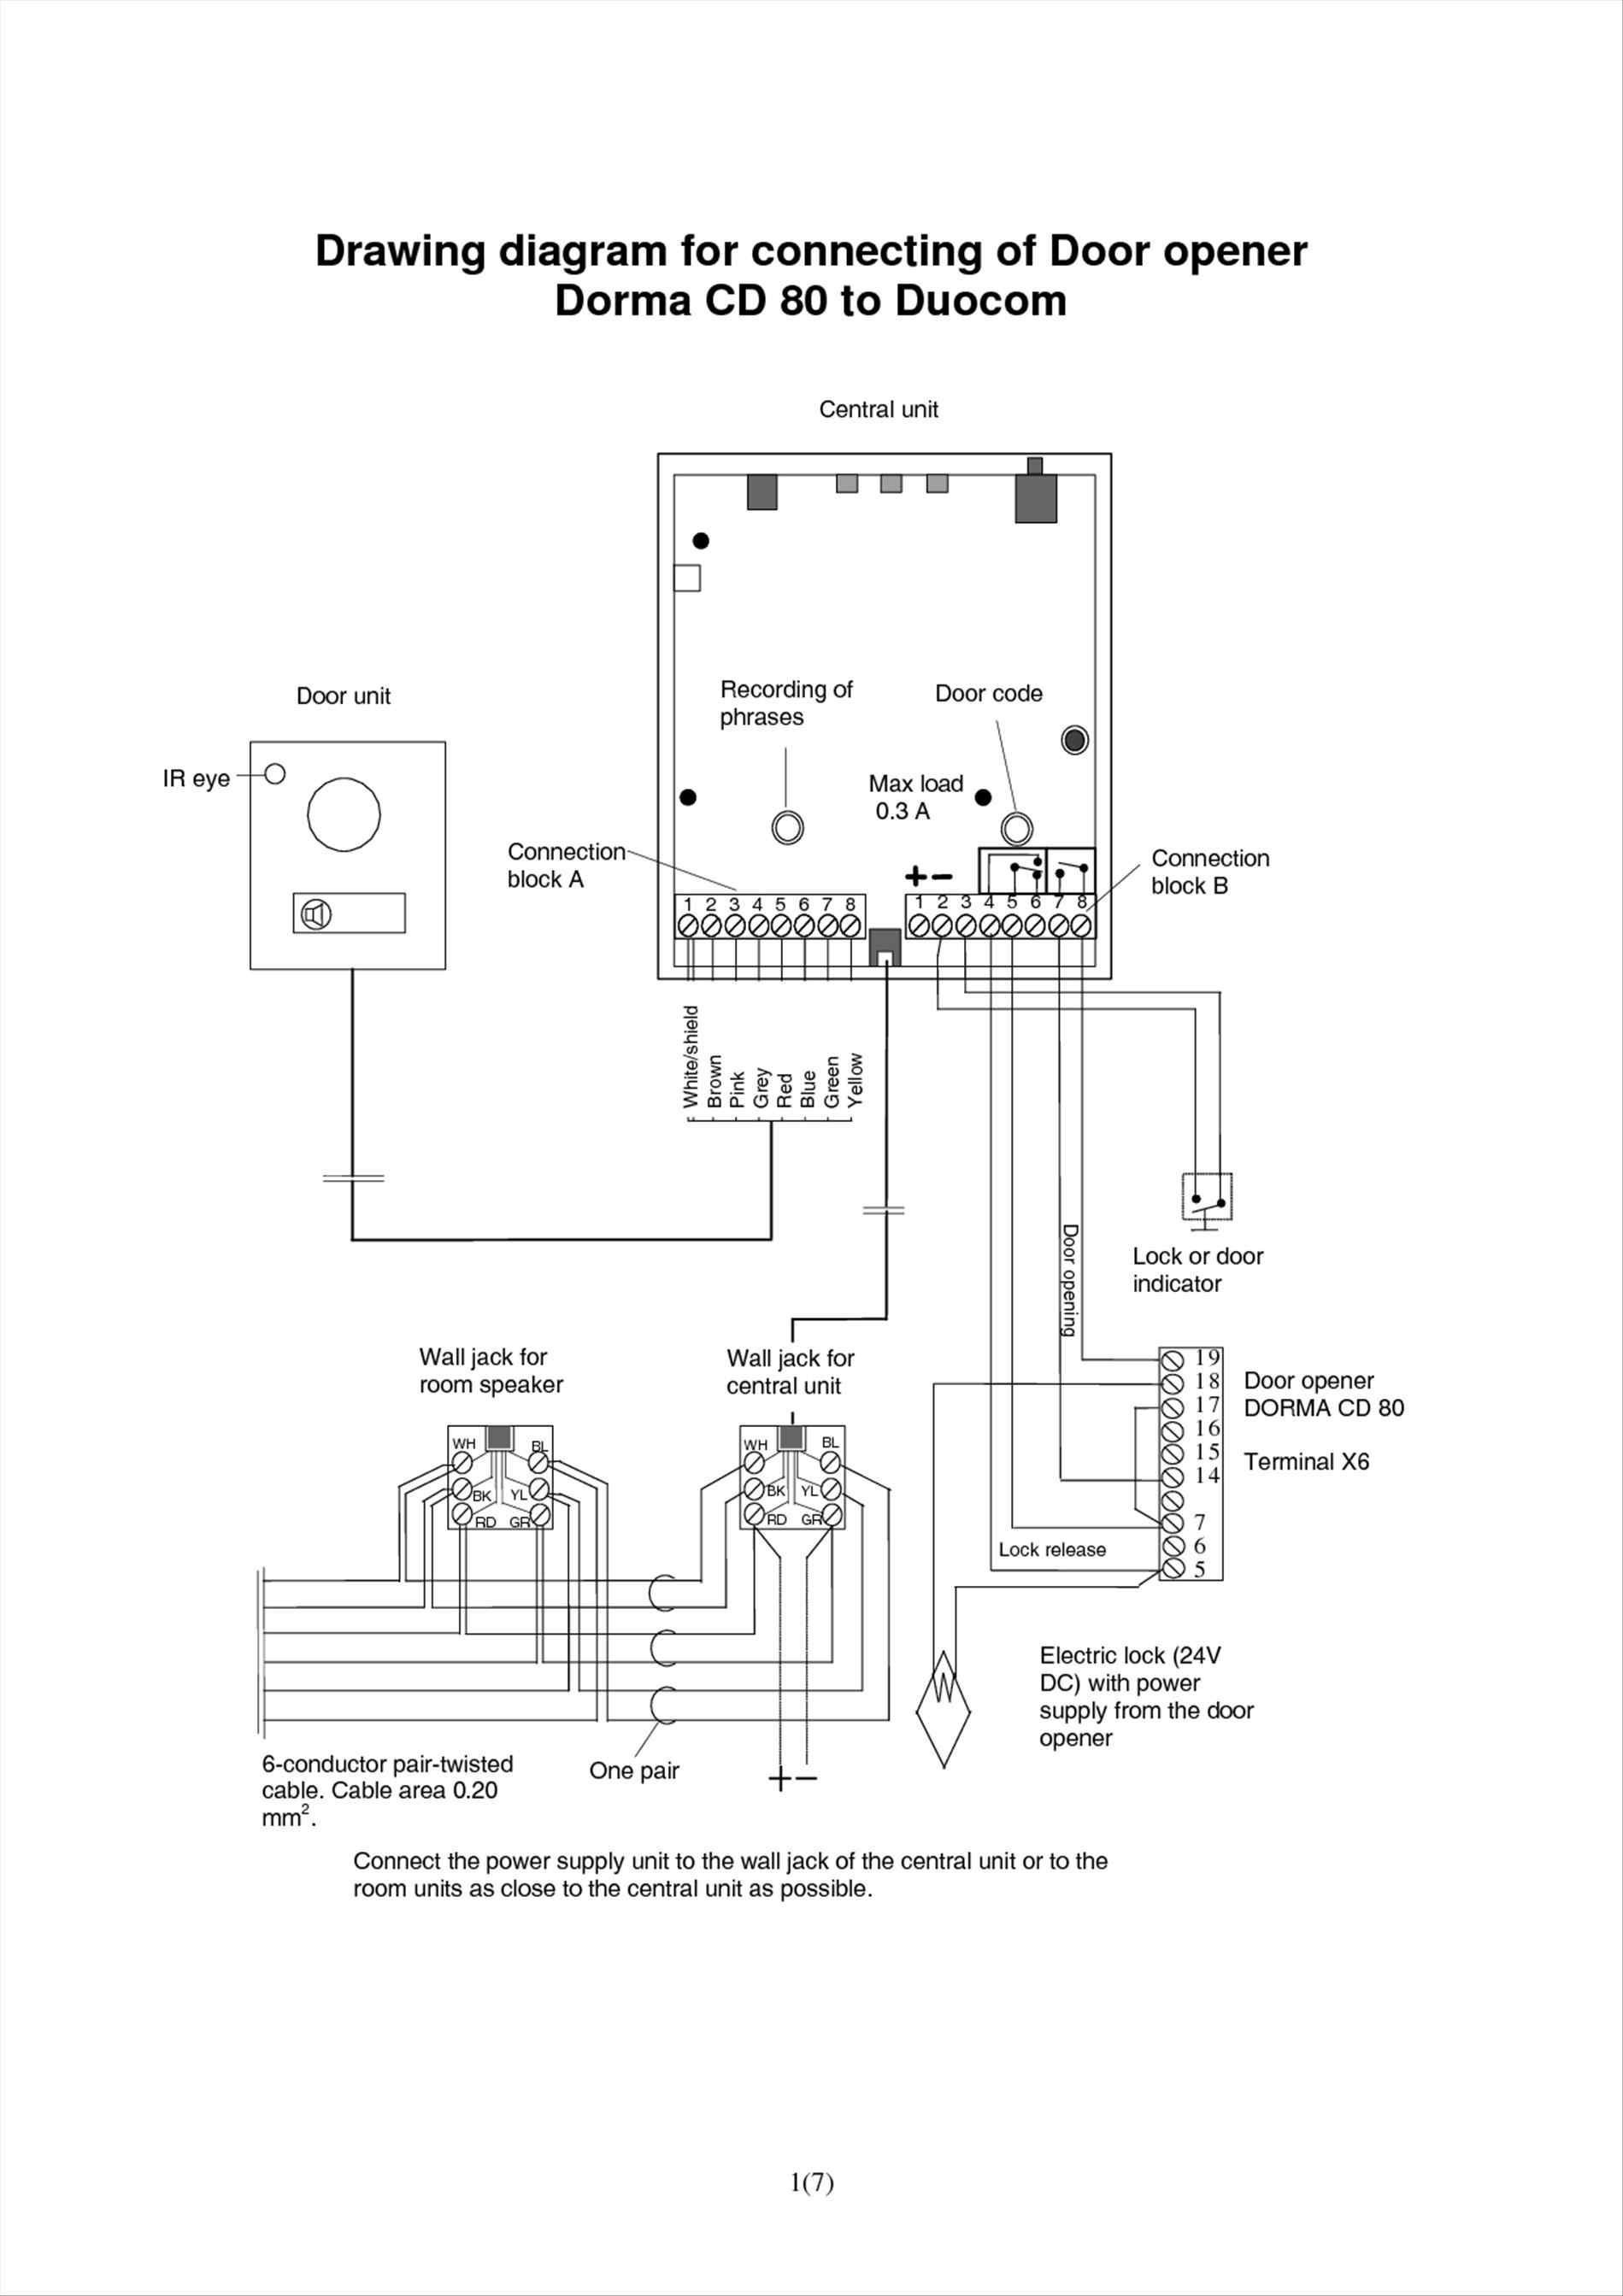 wiring diagram for craftsman garage door opener Collection-Wiring Diagram for Stanley Garage Door Opener Fresh Sears Craftsman Garage Door Opener Wiring Diagram Download 17-a